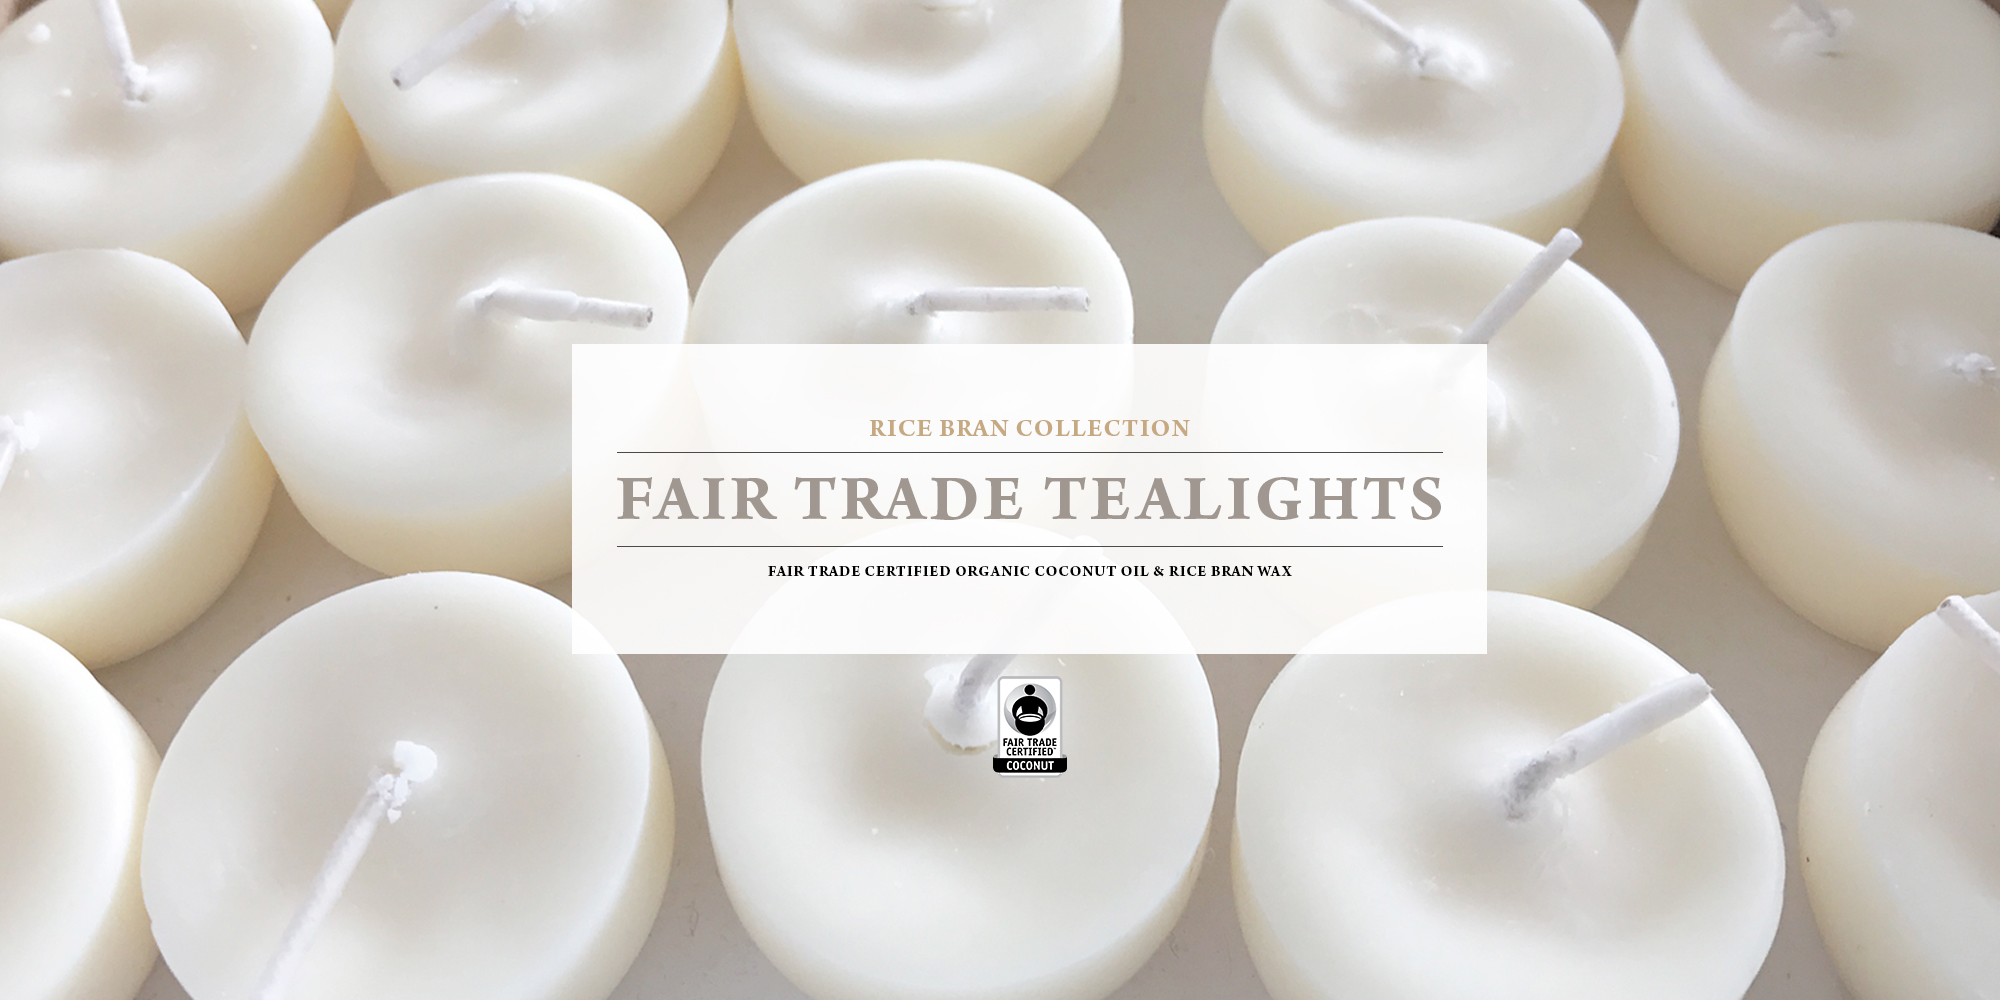 Fair Trade Certified Tealights made from Rice Bran Wax and Organic Coconut Oil